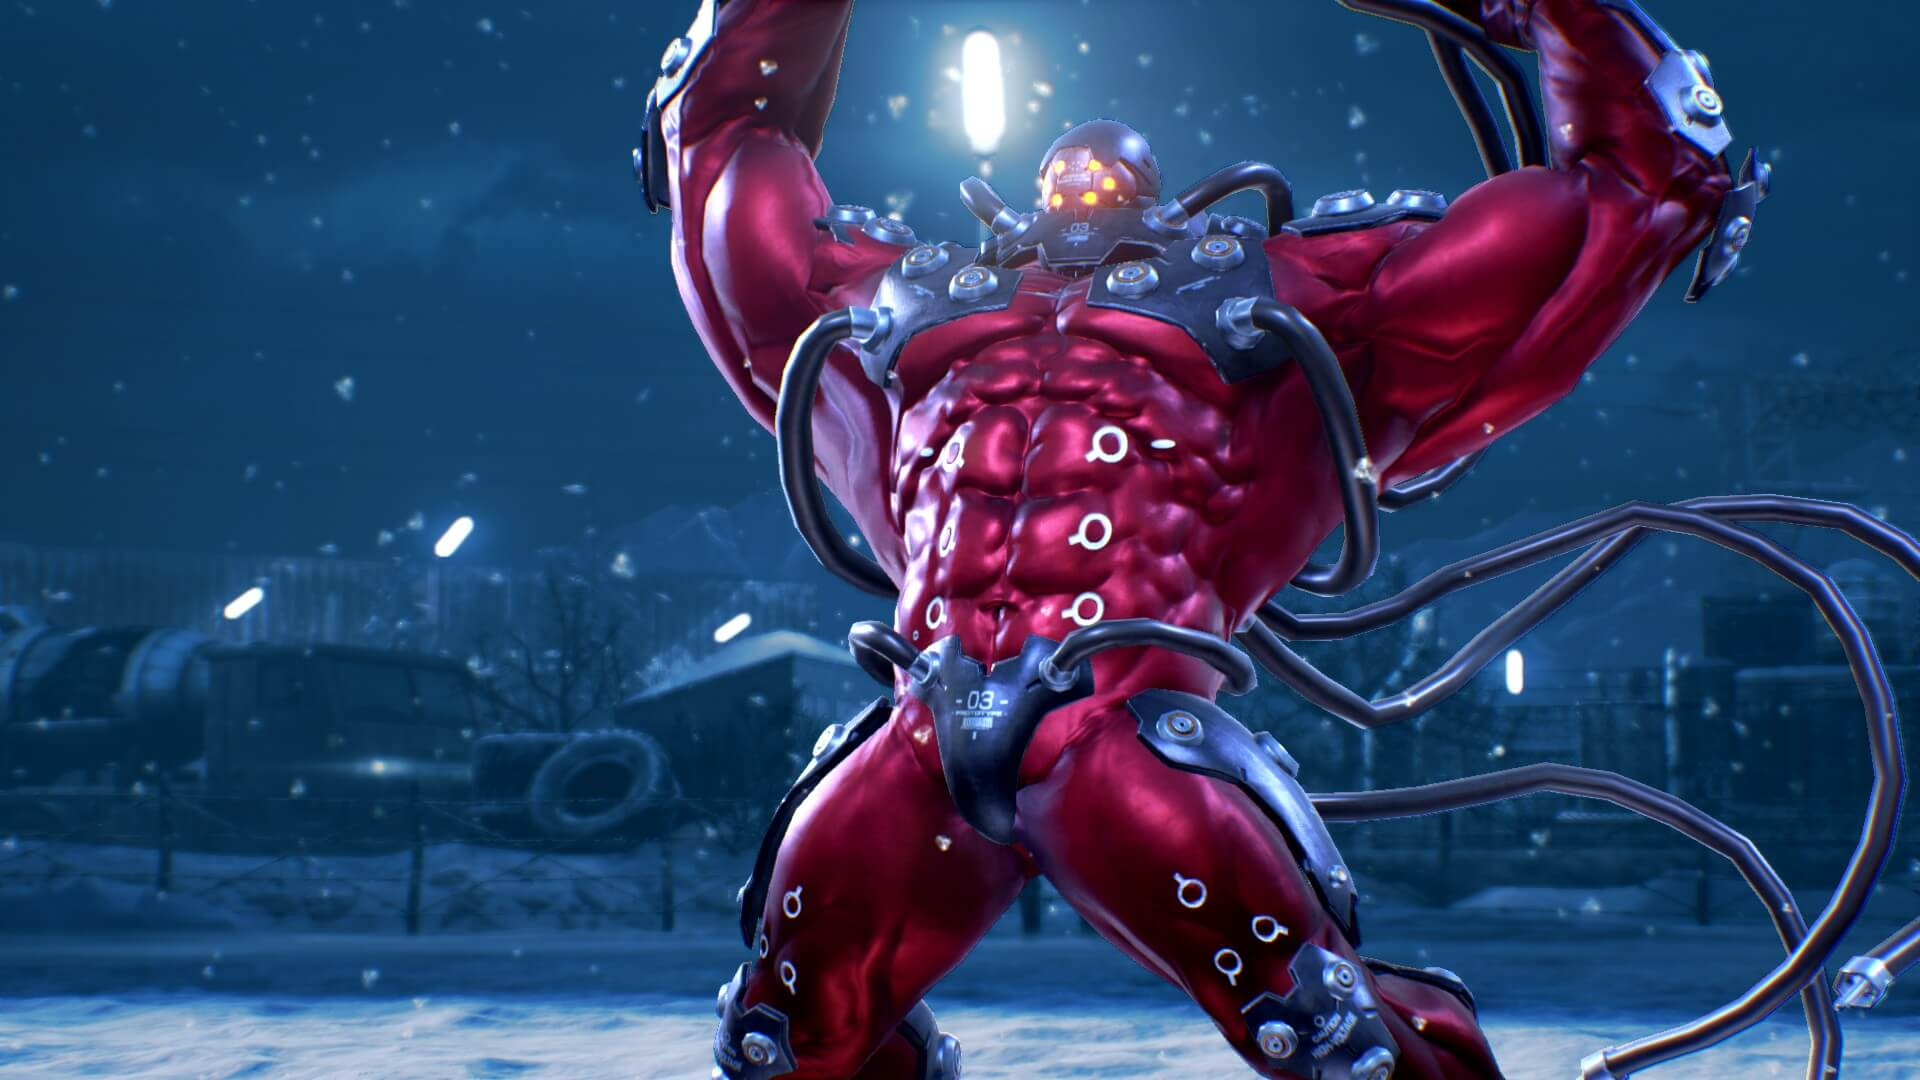 Harada named fighter with the highest win rate in the updated Tekken 7